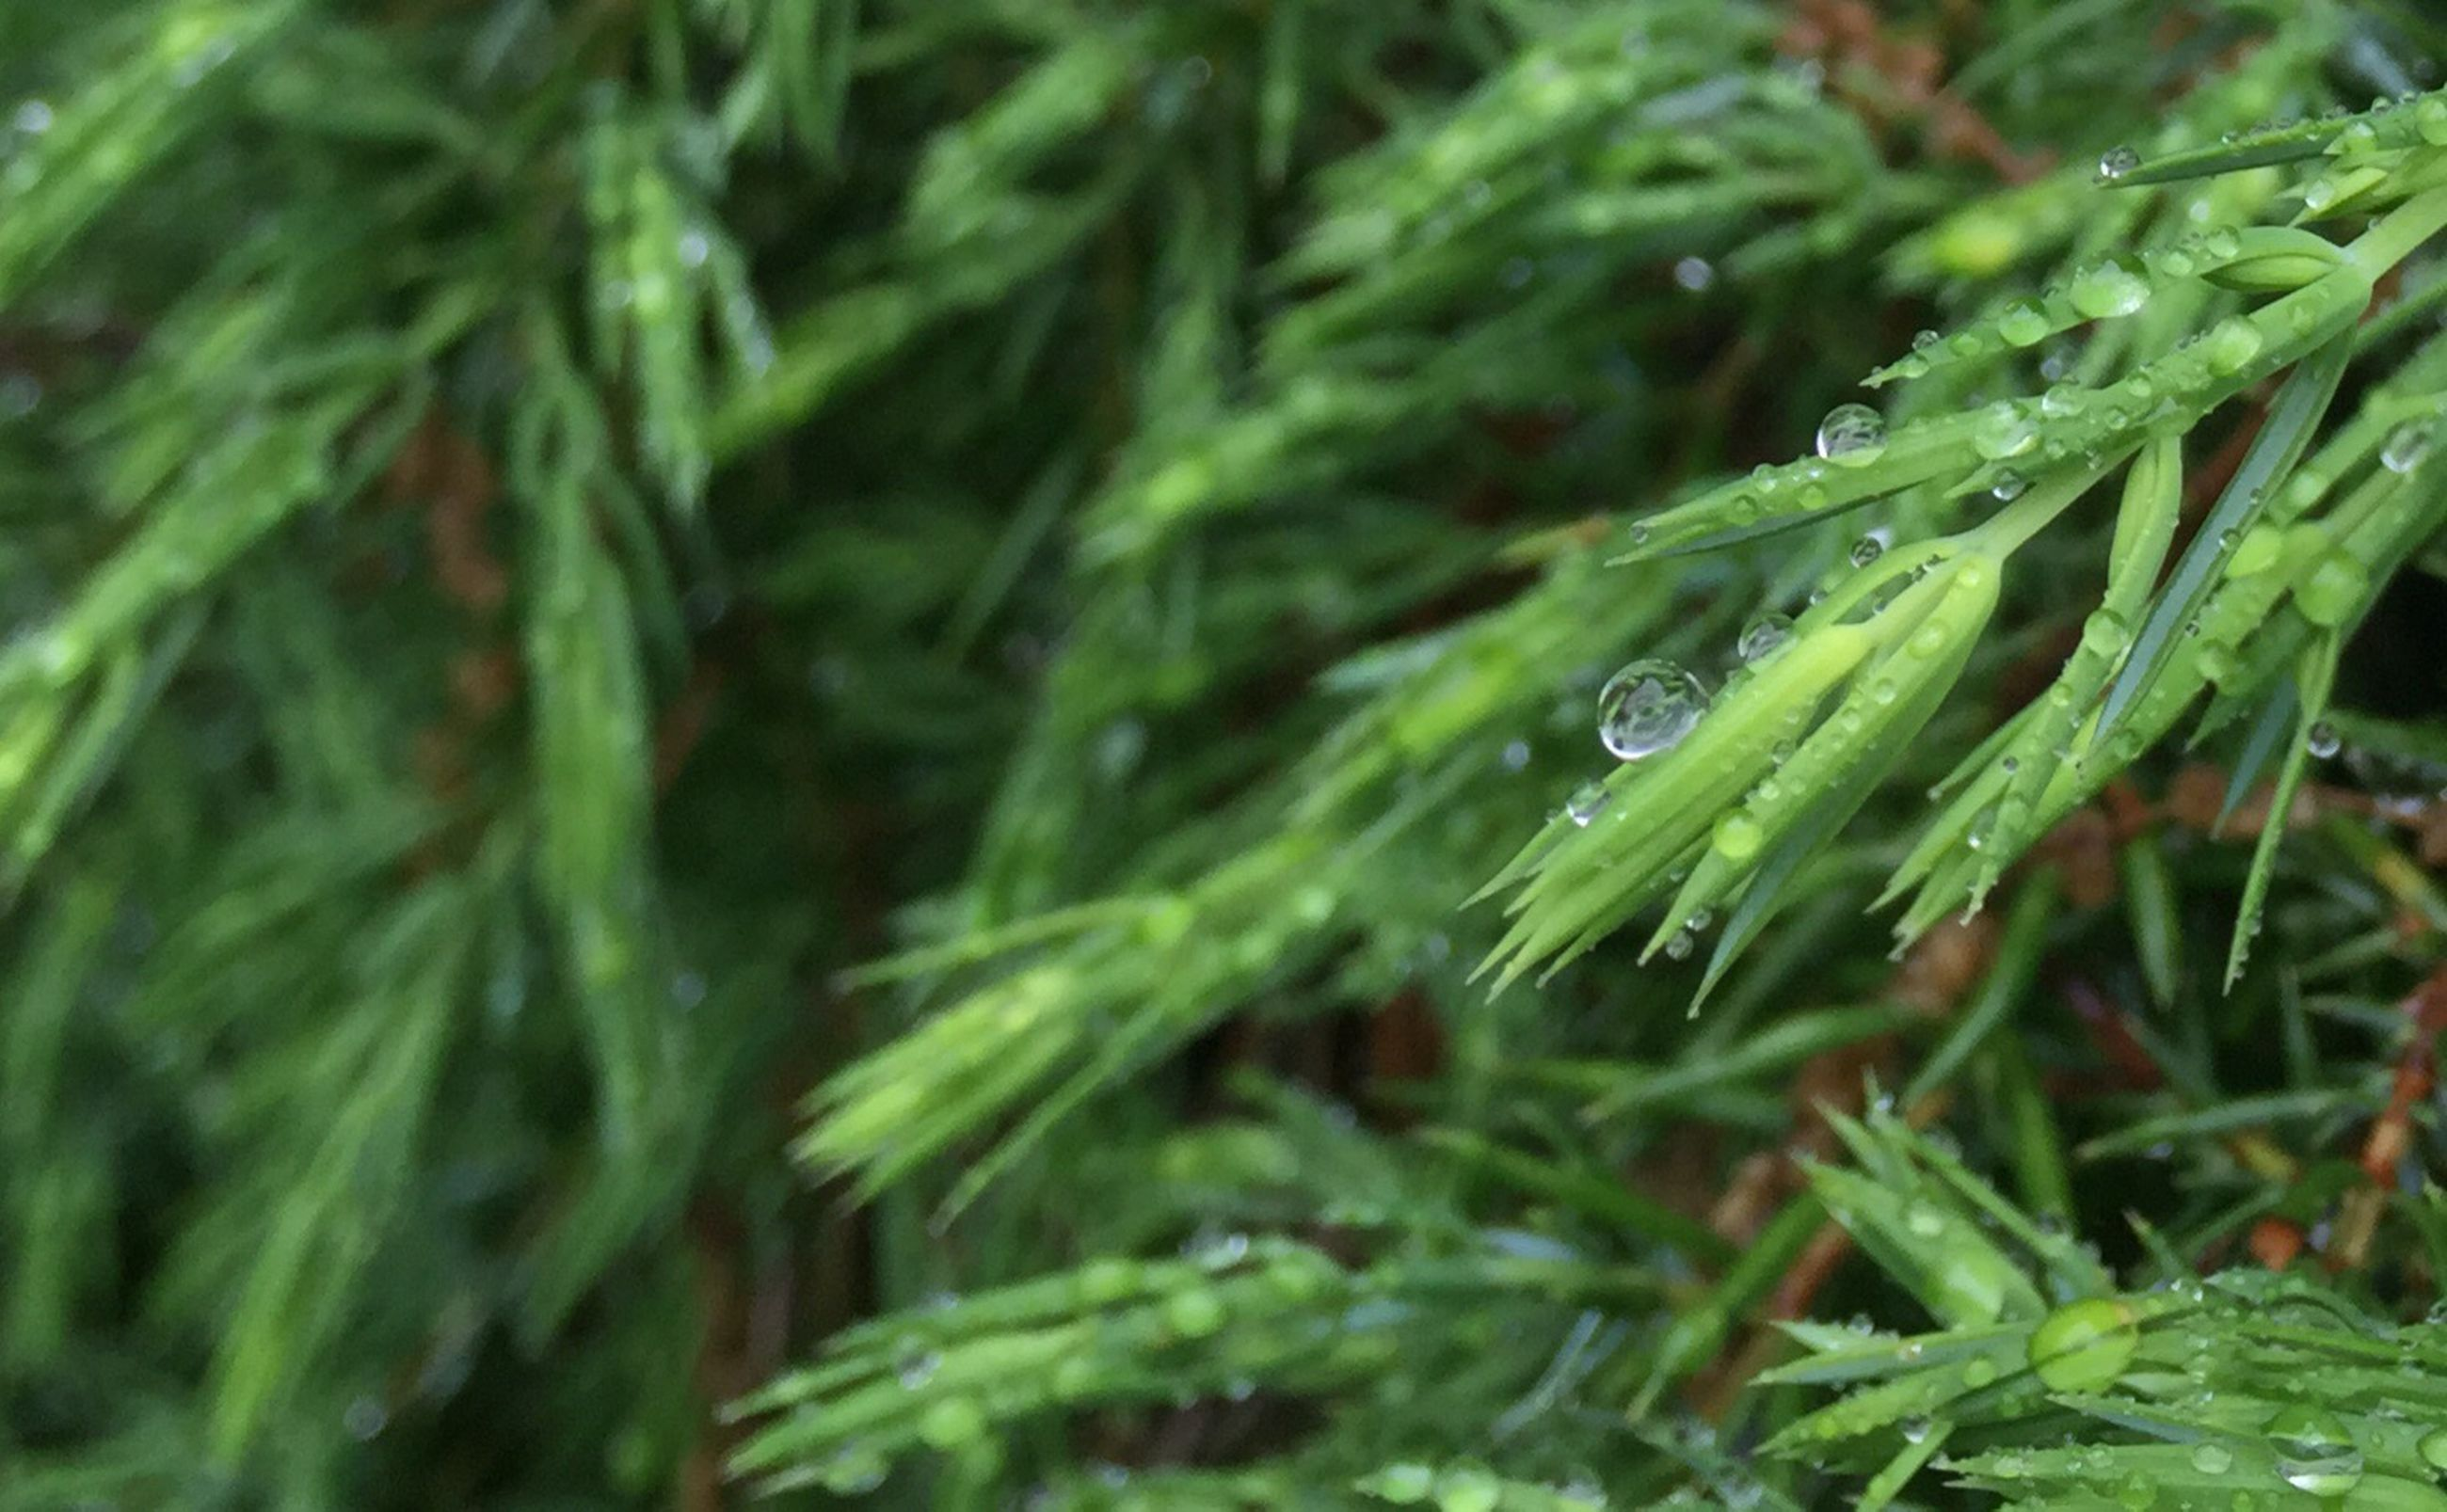 green color, growth, close-up, leaf, nature, plant, freshness, full frame, drop, selective focus, backgrounds, wet, beauty in nature, green, water, no people, focus on foreground, grass, day, blade of grass